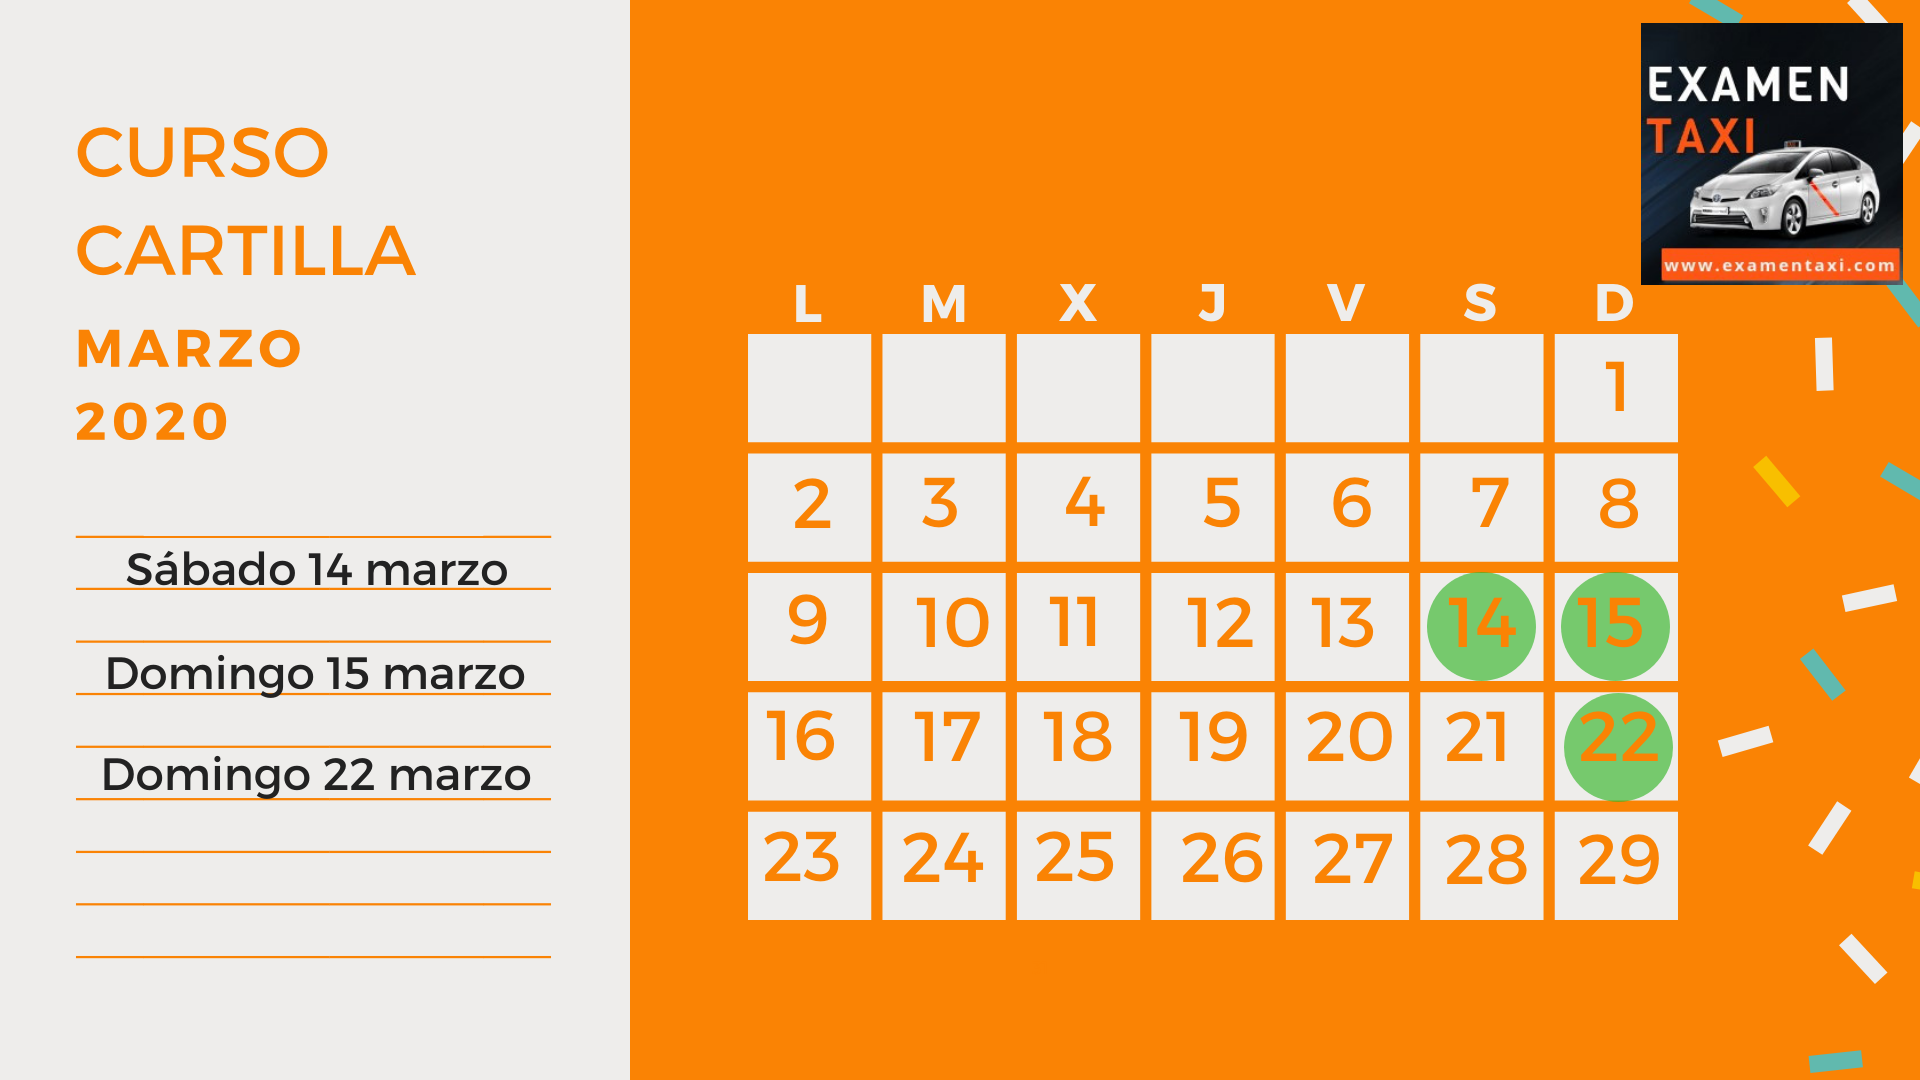 Calendario Curso Cartilla Taxi Marzo 2020